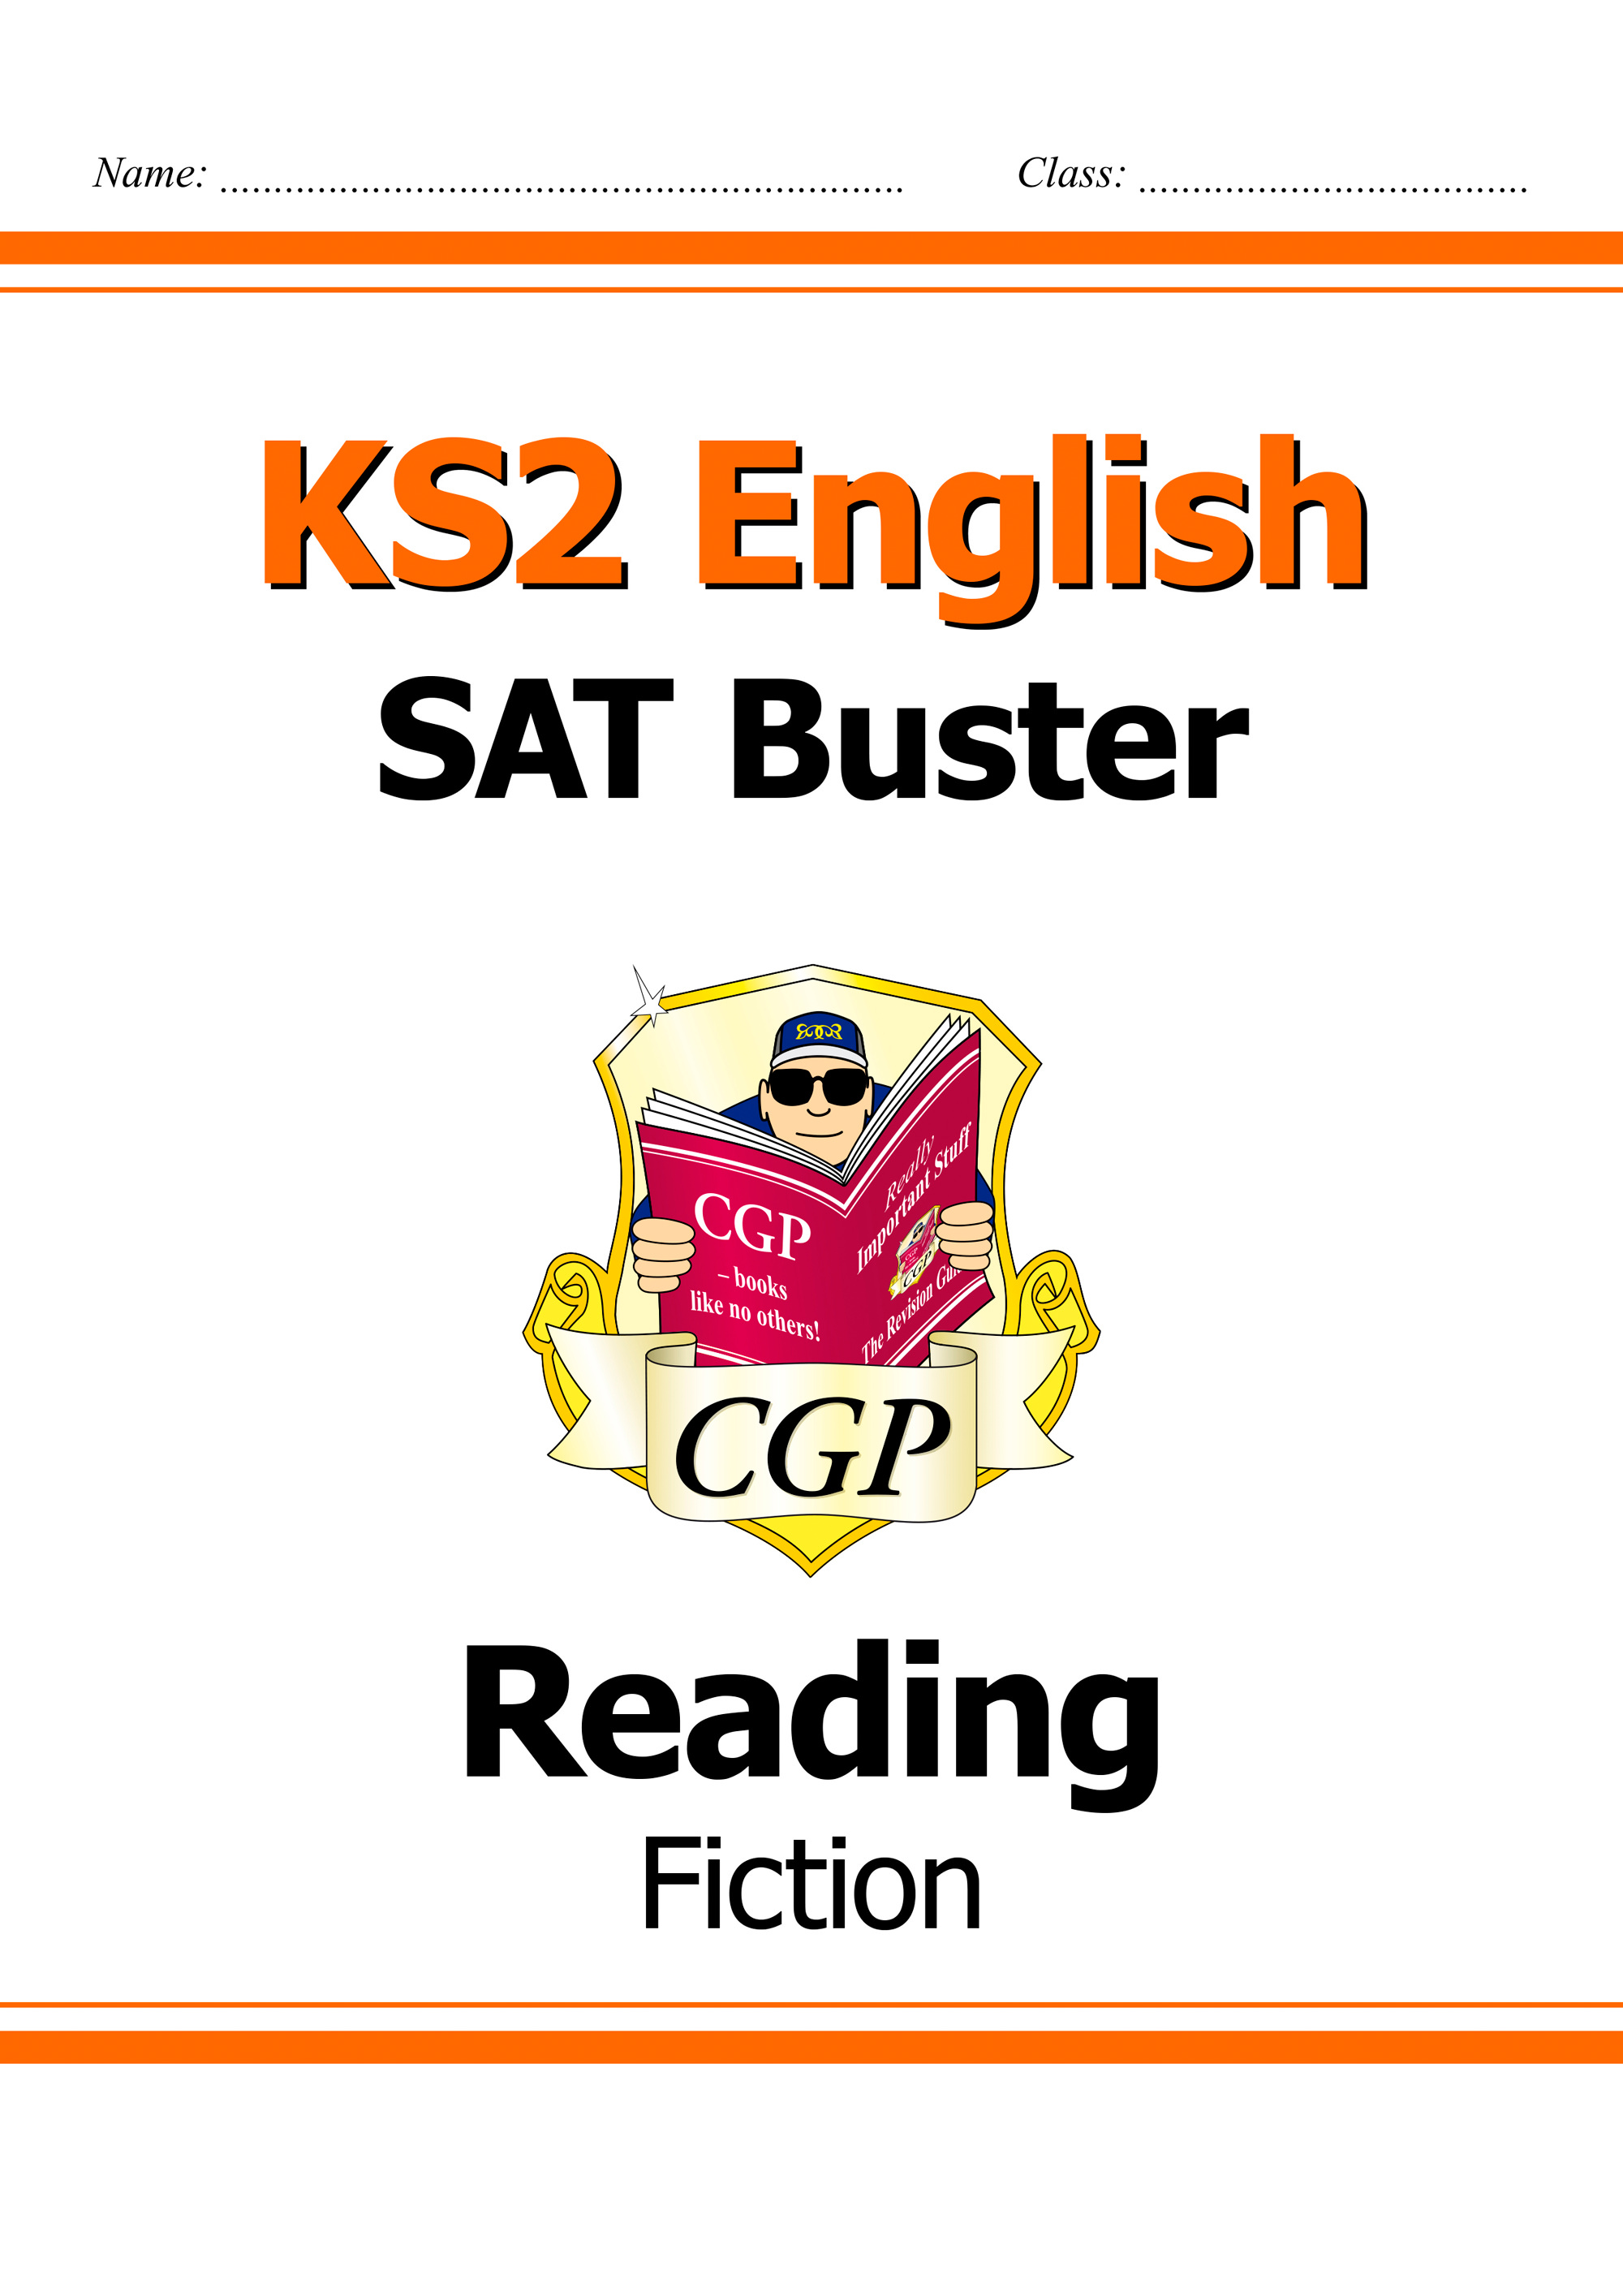 E6FRF21DK - New KS2 English Reading SAT Buster: Fiction (for tests in 2018 and beyond)